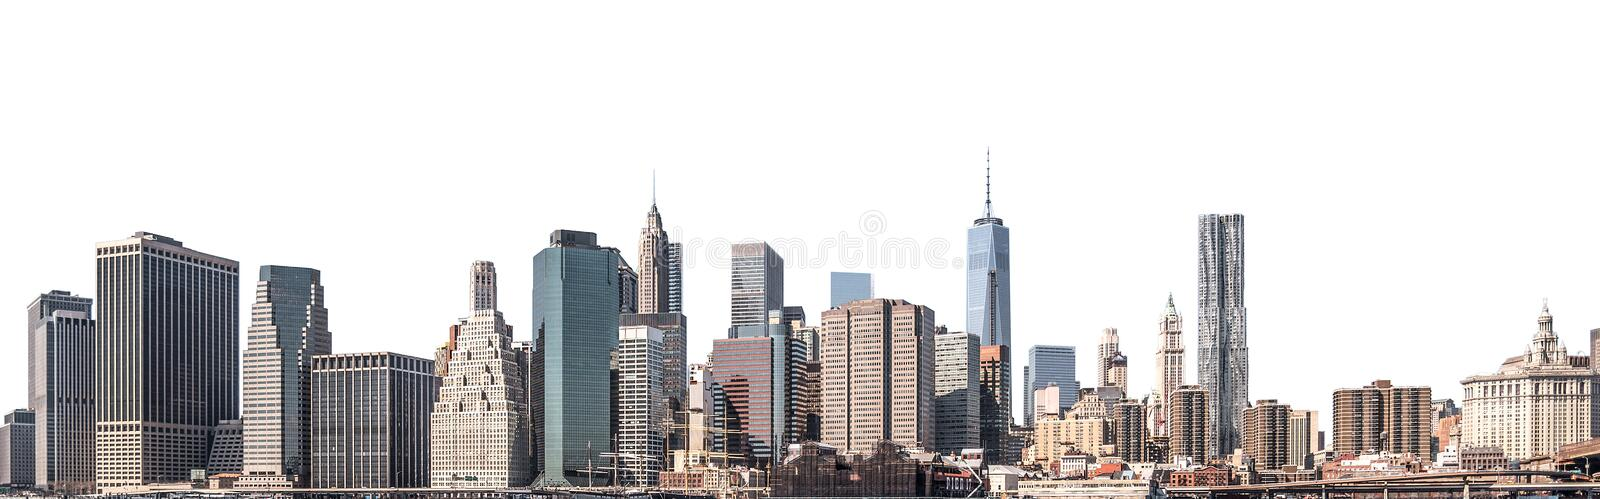 World Trade Center and skyscraper in Lower Manhattan, New York City, isolated. One World Trade Center and skyscraper, high-rise building in Lower Manhattan, New royalty free stock image